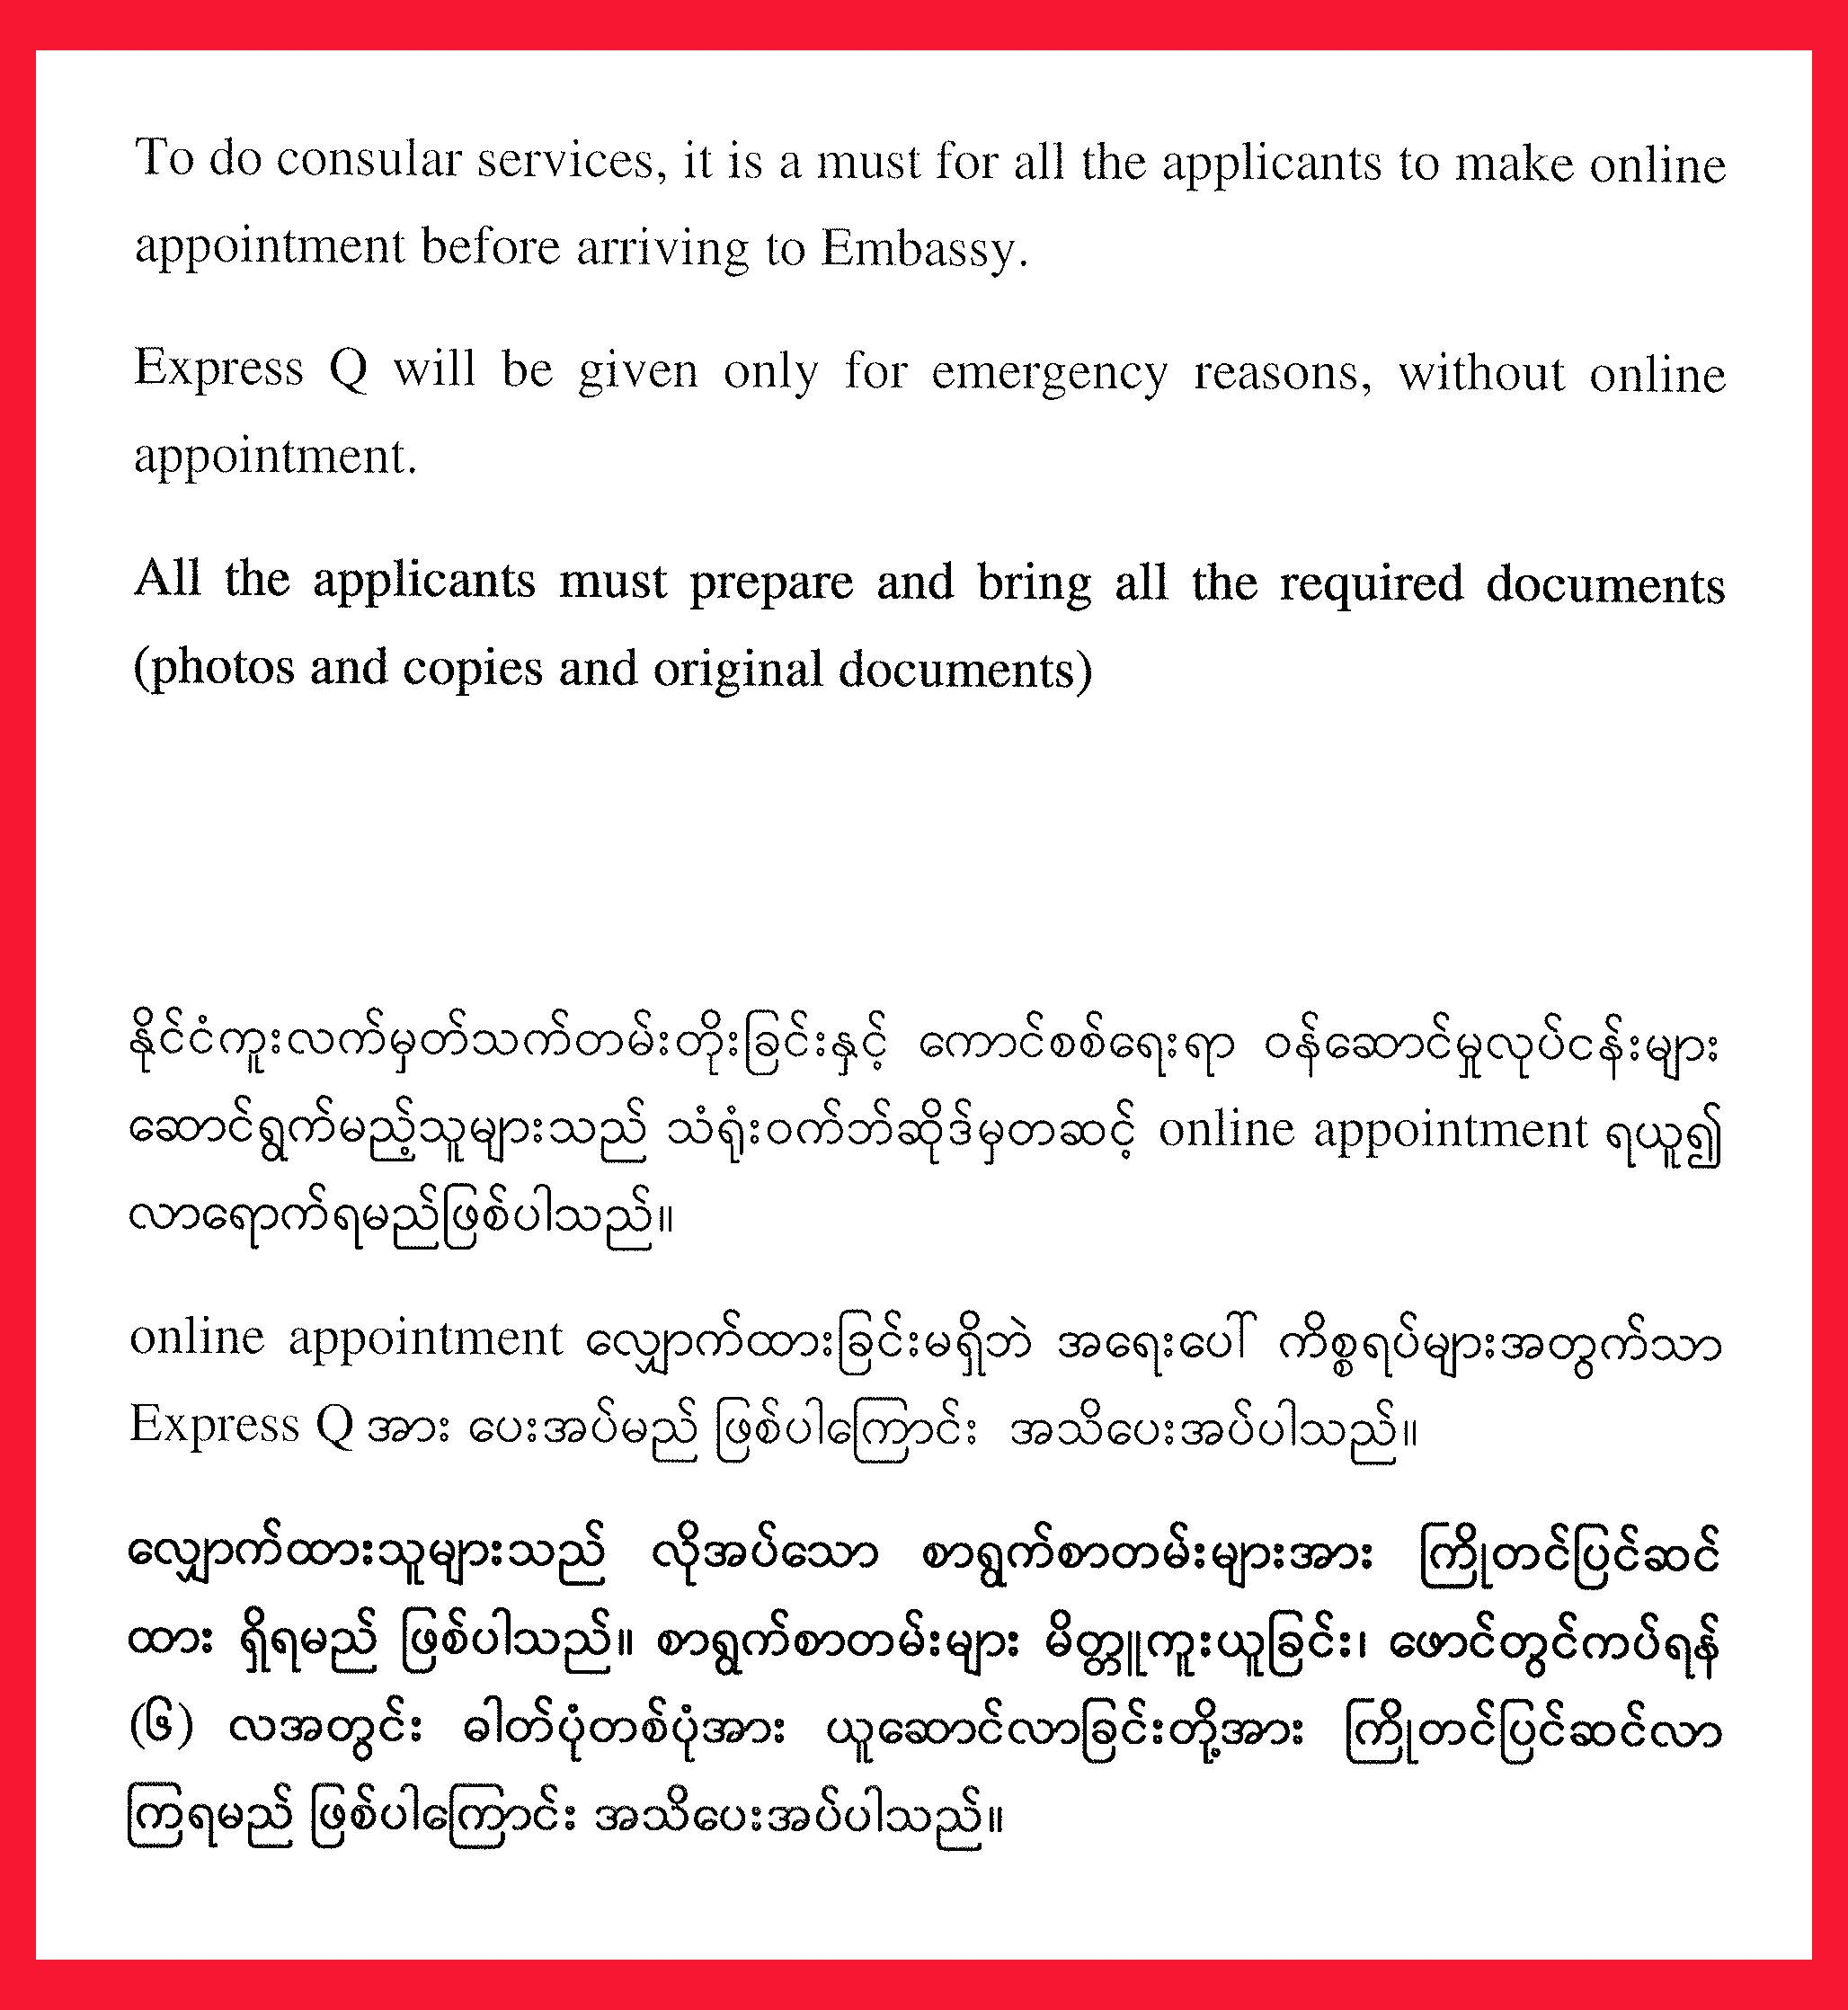 Employee Handbook Sample In Myanmar